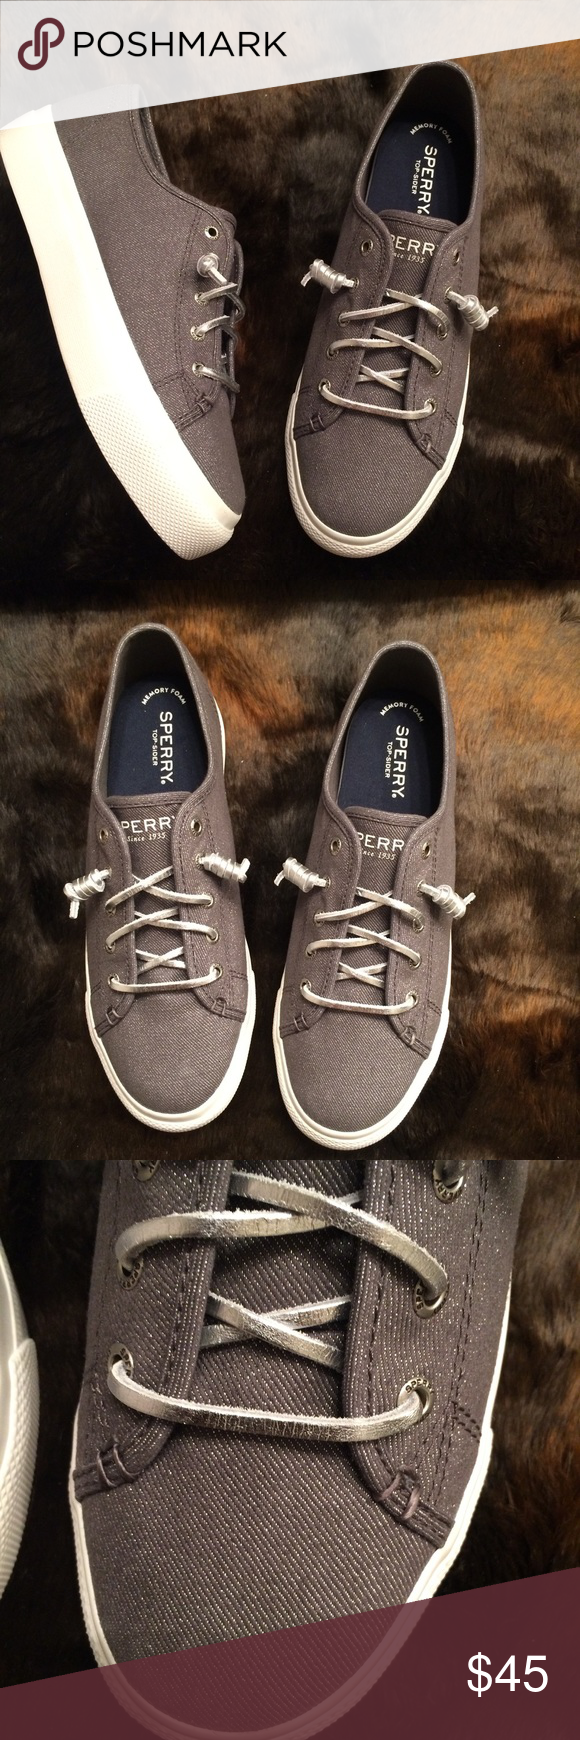 ad4cd78580 Sperry Sky Sail Platform Sneaker These shoes are beautiful! They feature  the signature memory foam